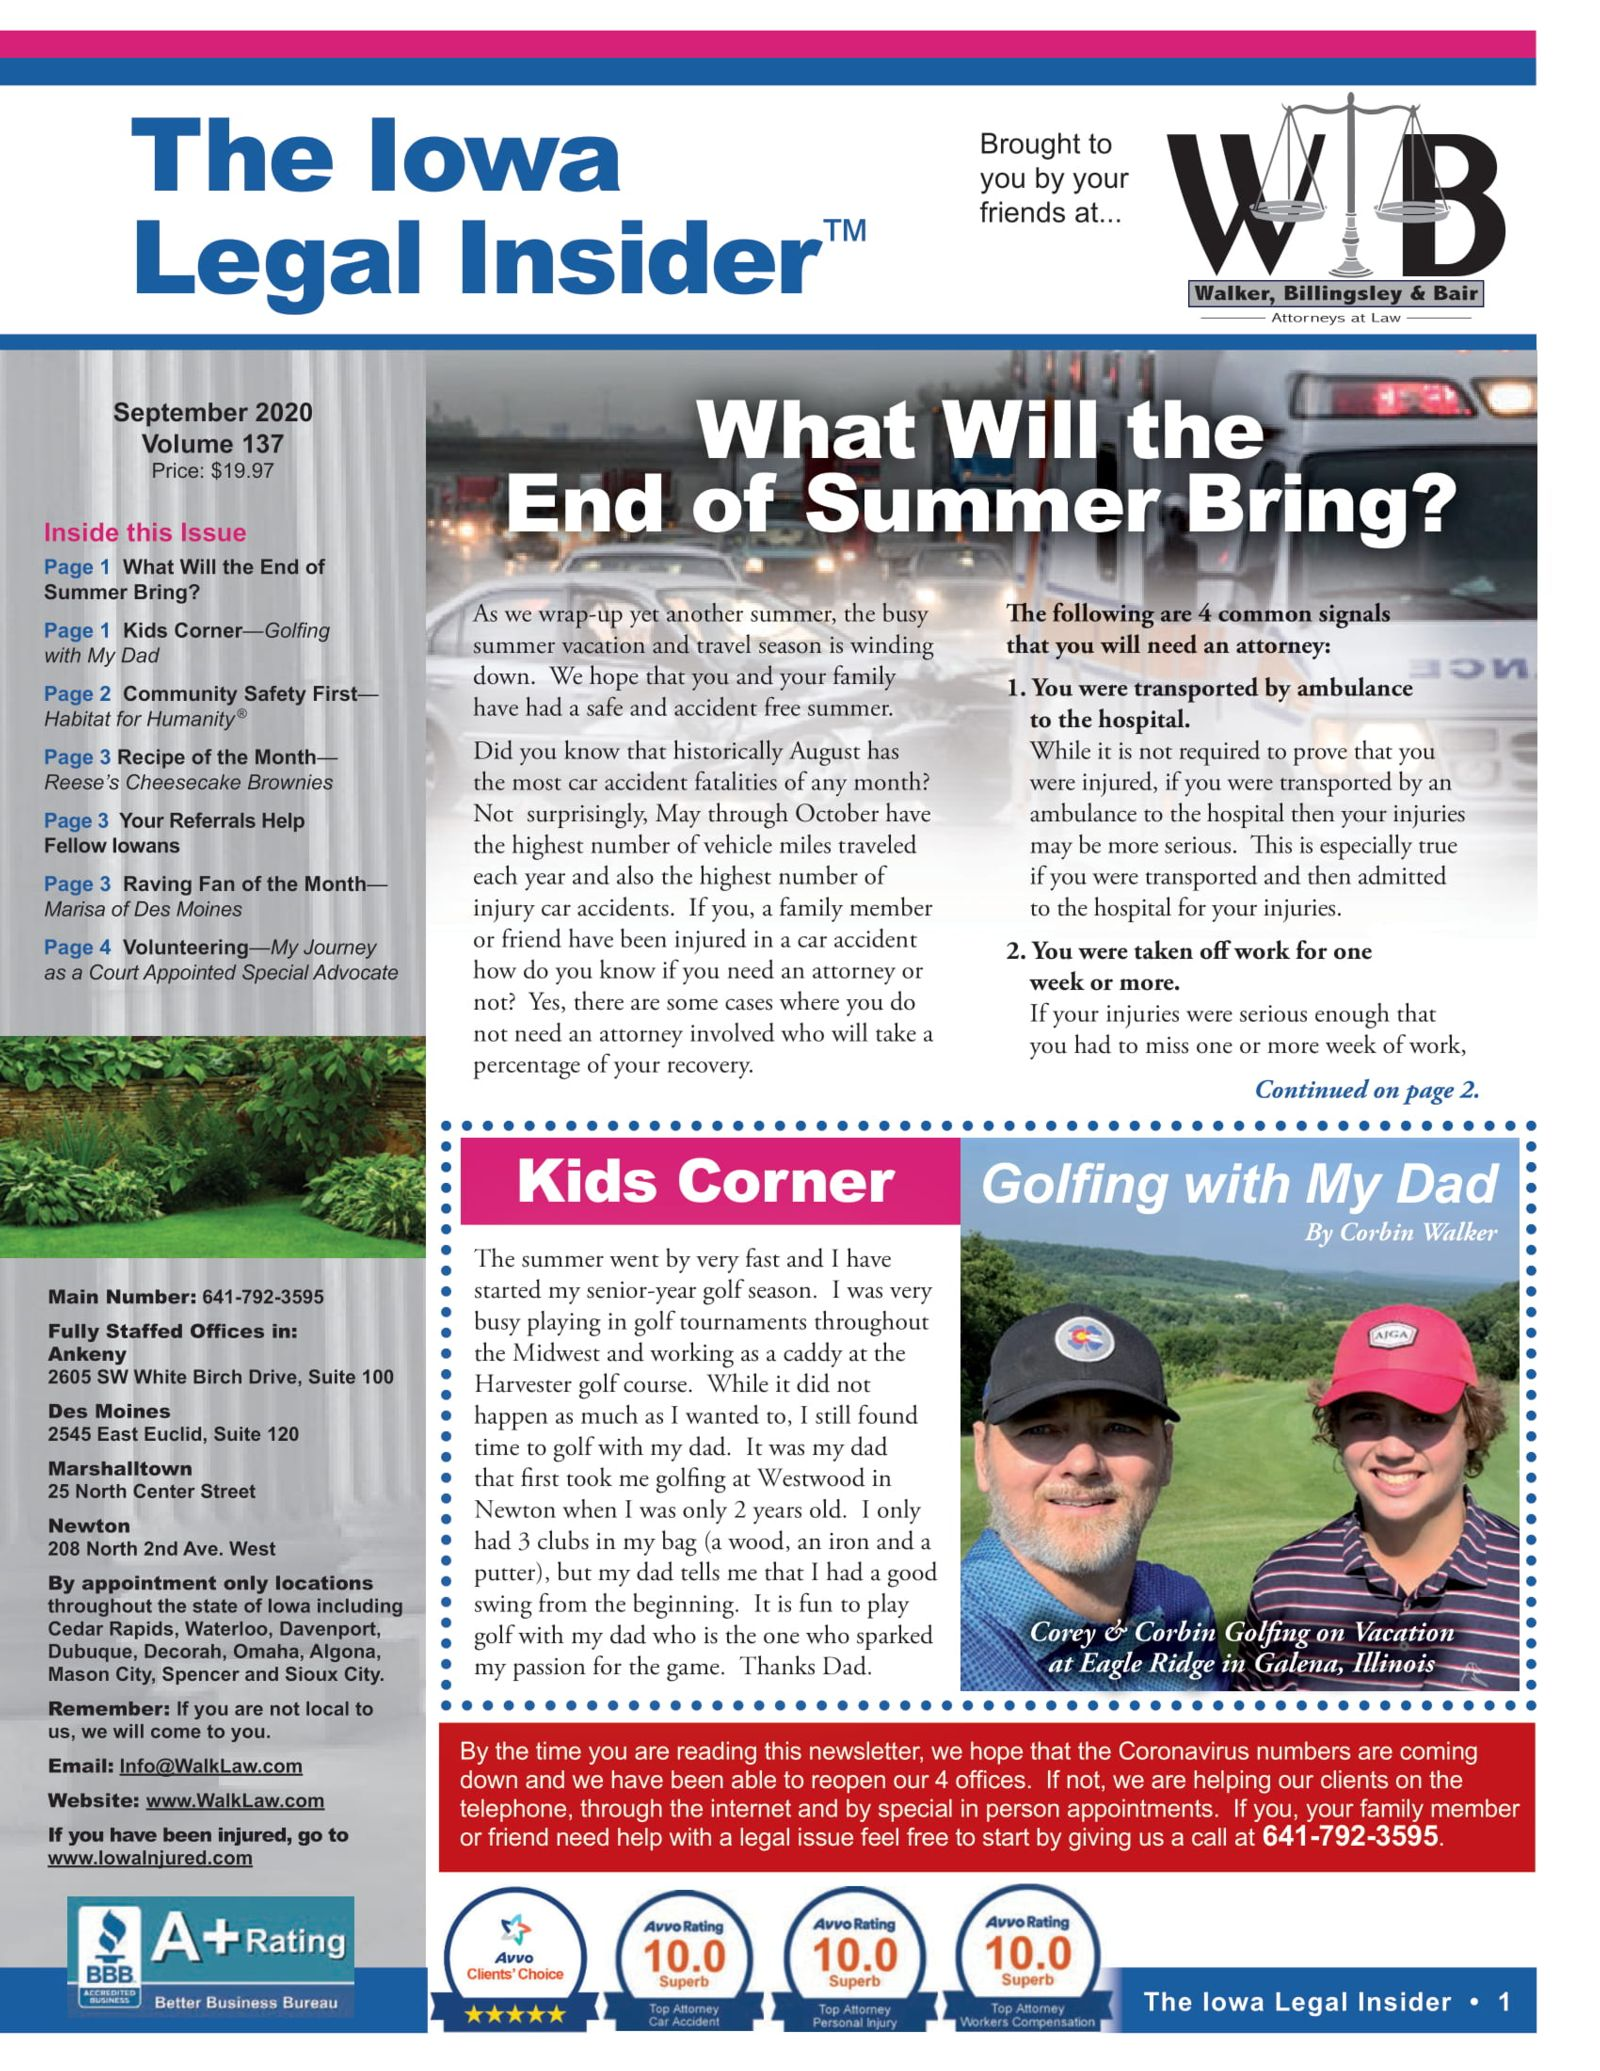 Iowa legal insider driving at the end of summer